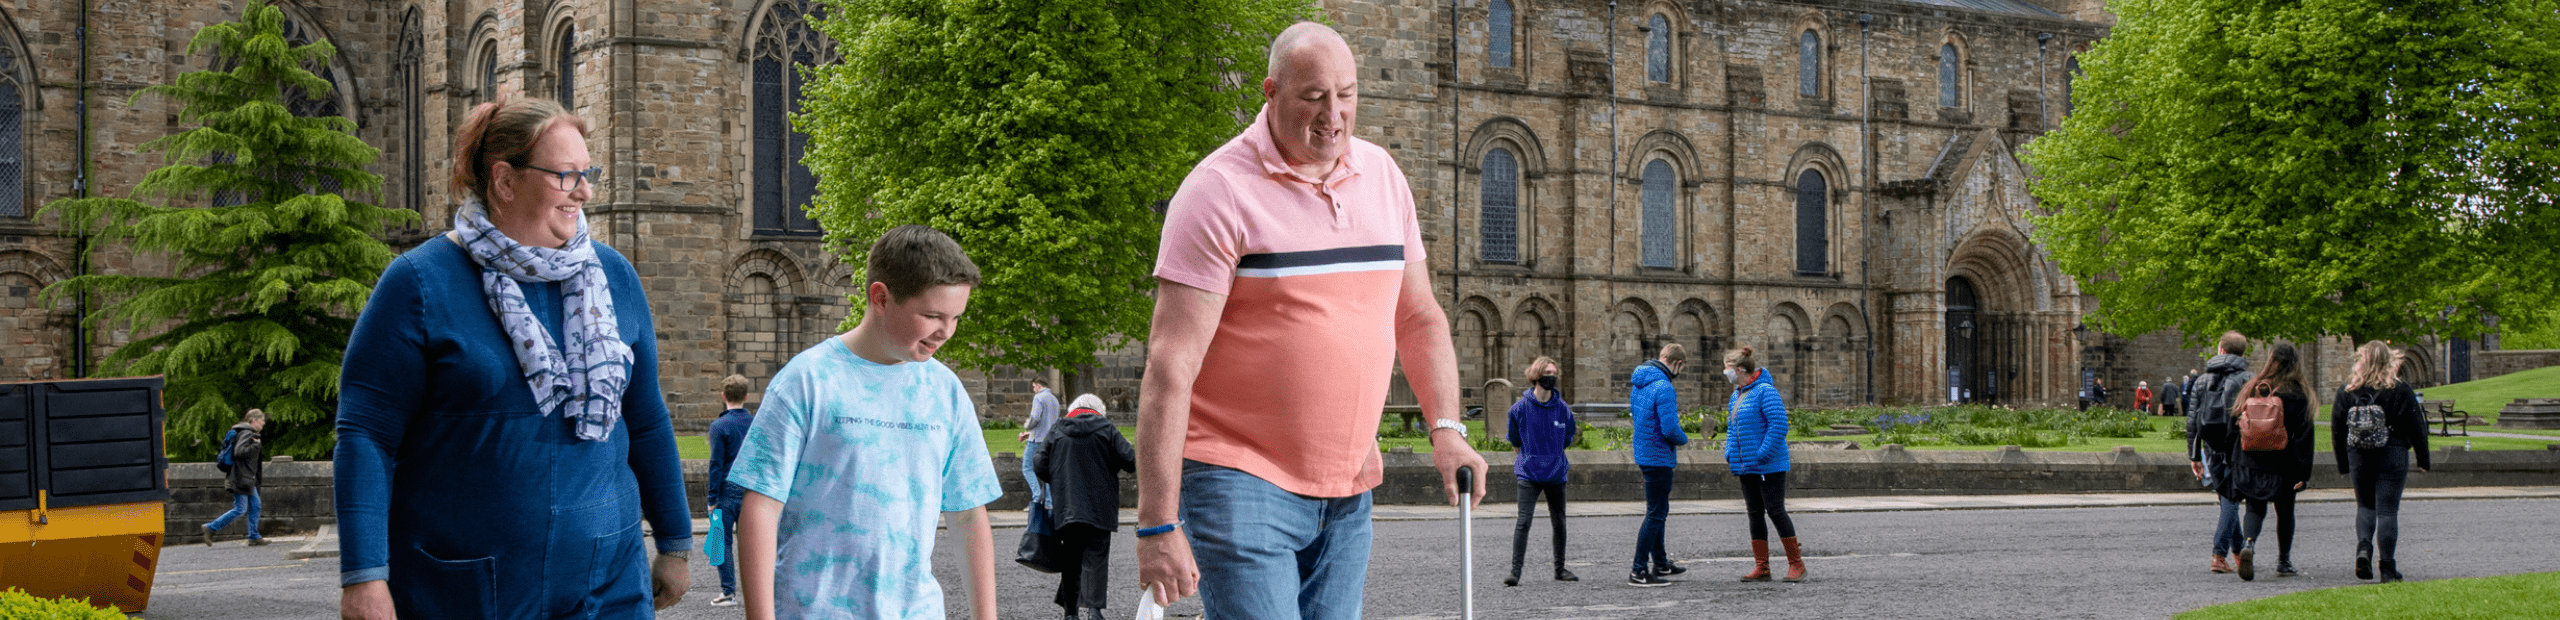 Family walking past Durham Cathedral